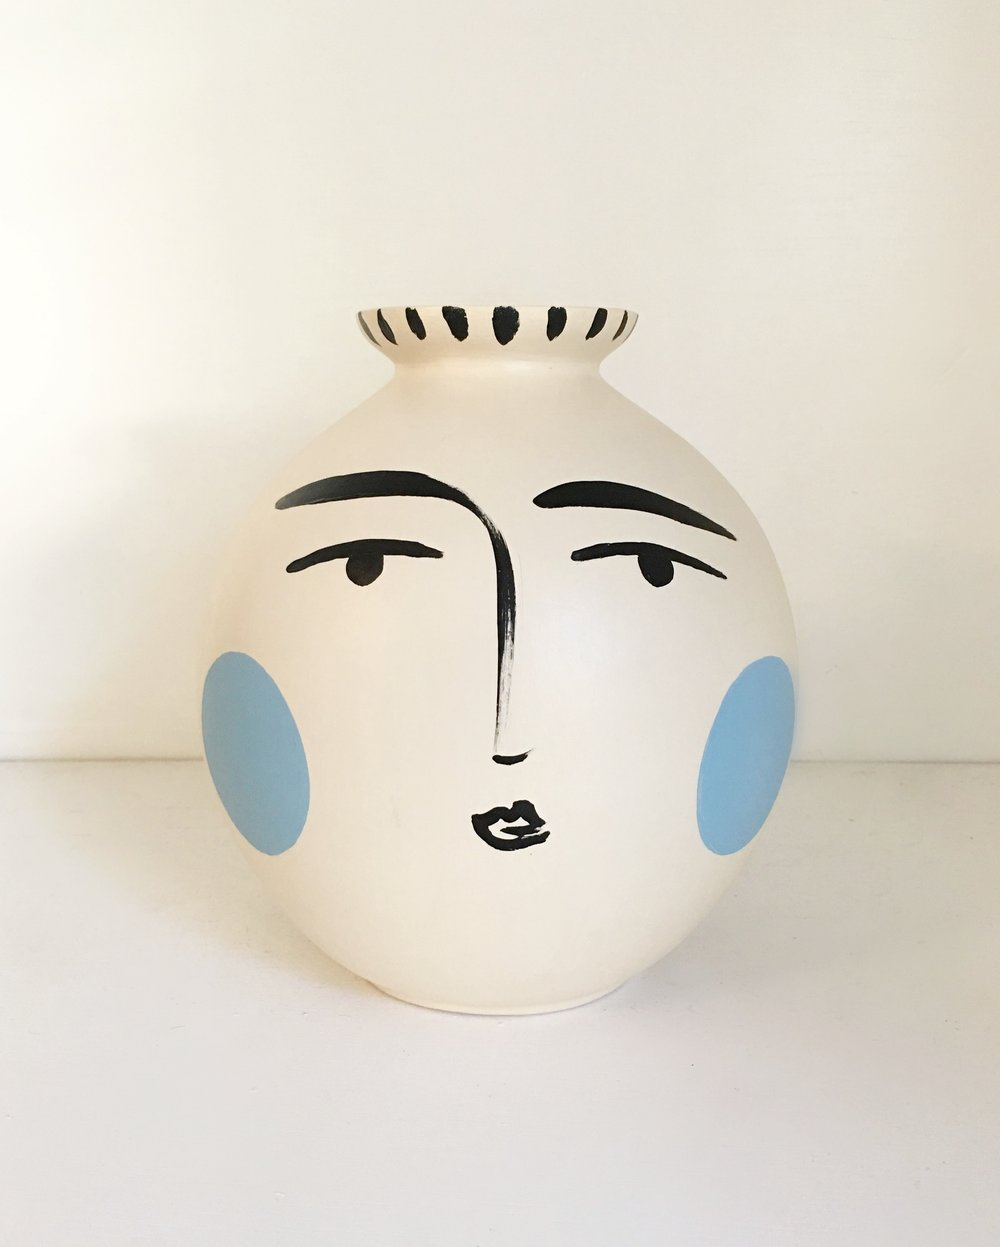 Blushing Blue Vase - Available at Quogue Gallery